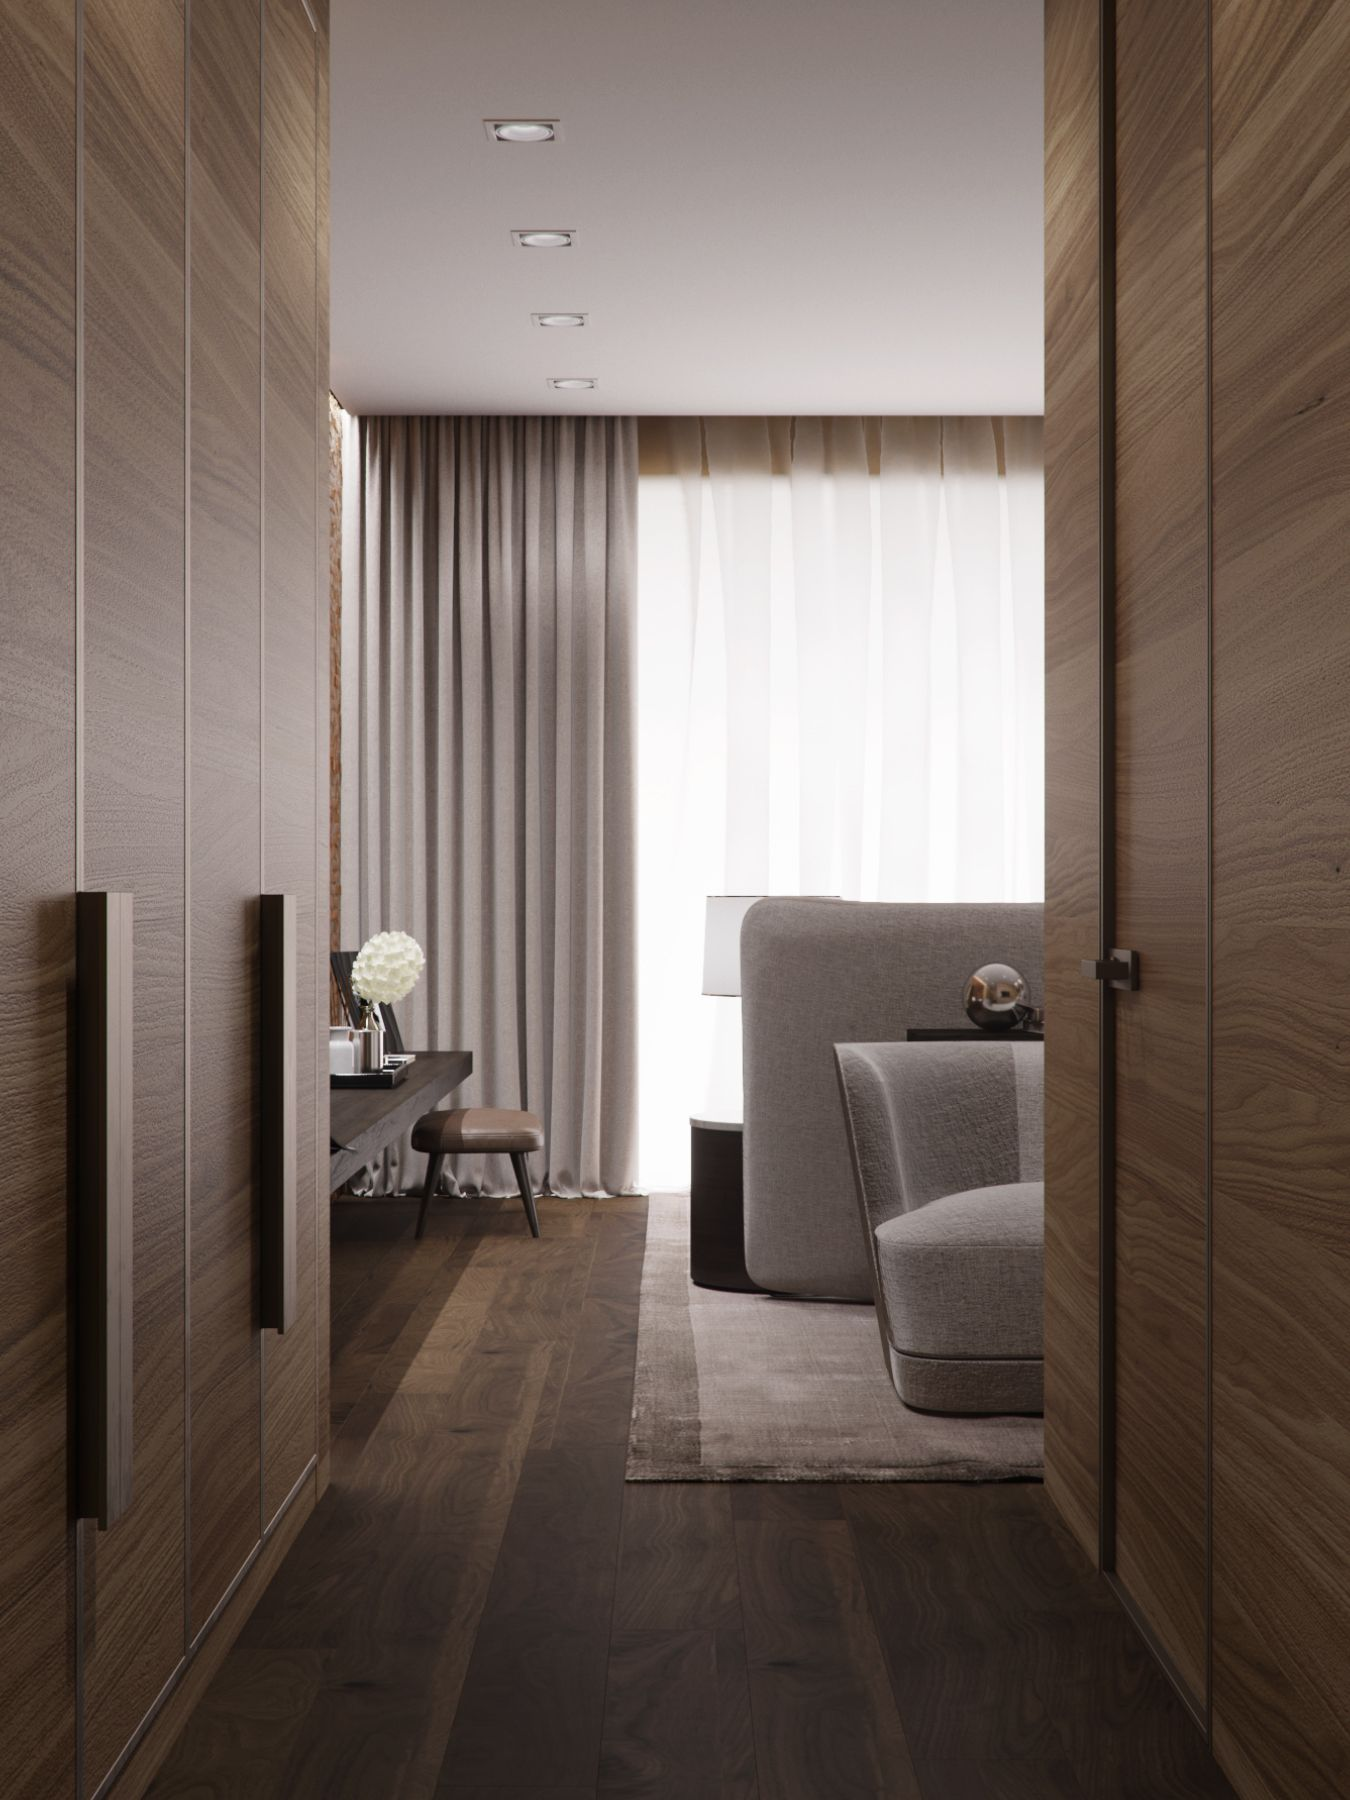 Hotel Room Designs: 3D Rendering Of Hotel Rooms